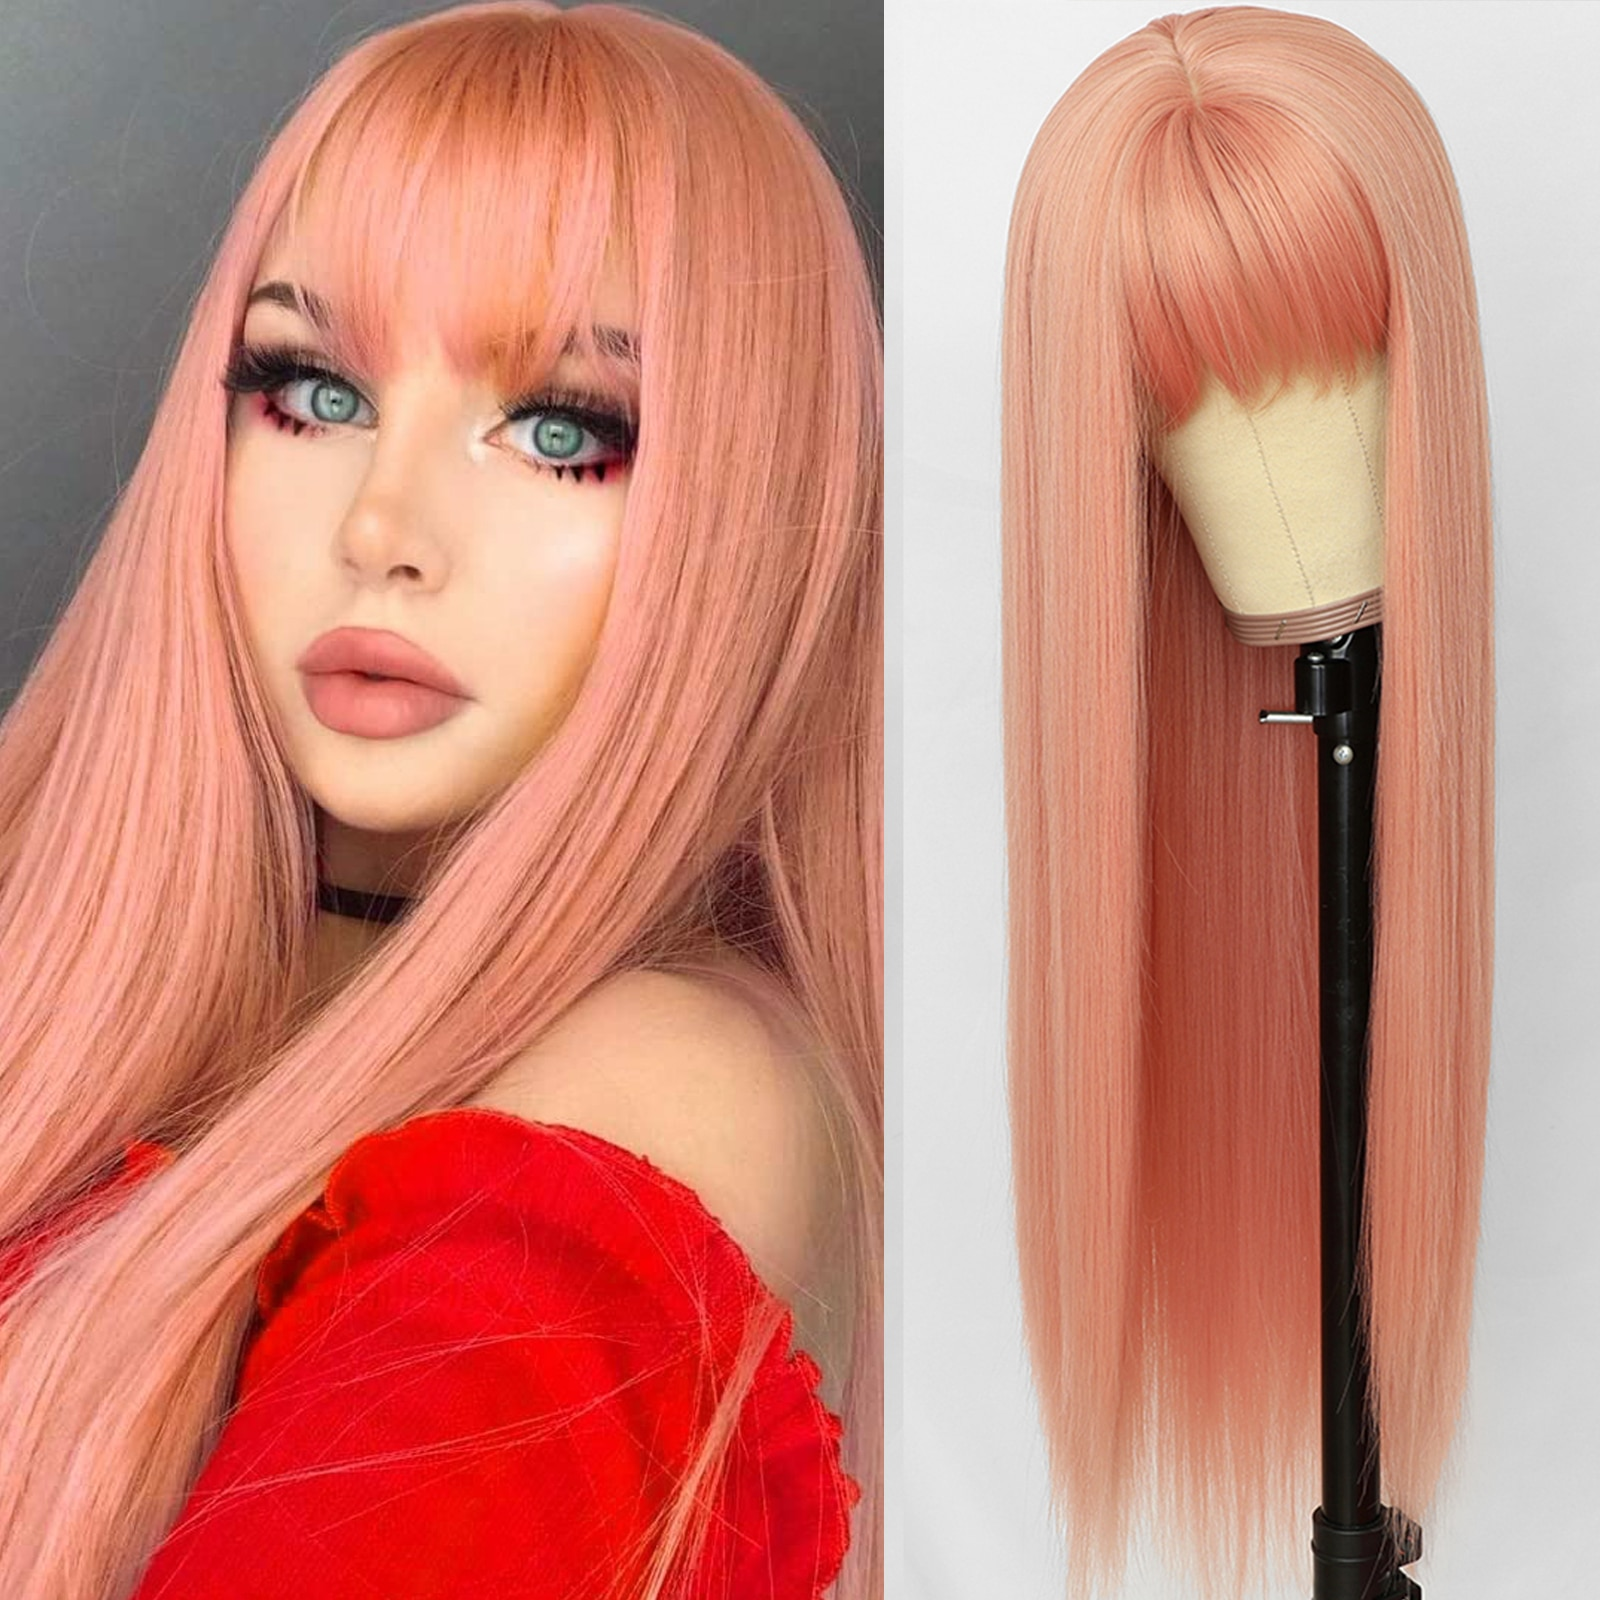 Oxeely Pink Color Long Straight Synthetic Hair Wigs with Bangs Heat Resistant Synthetic None Lace Wigs for Fashion Women